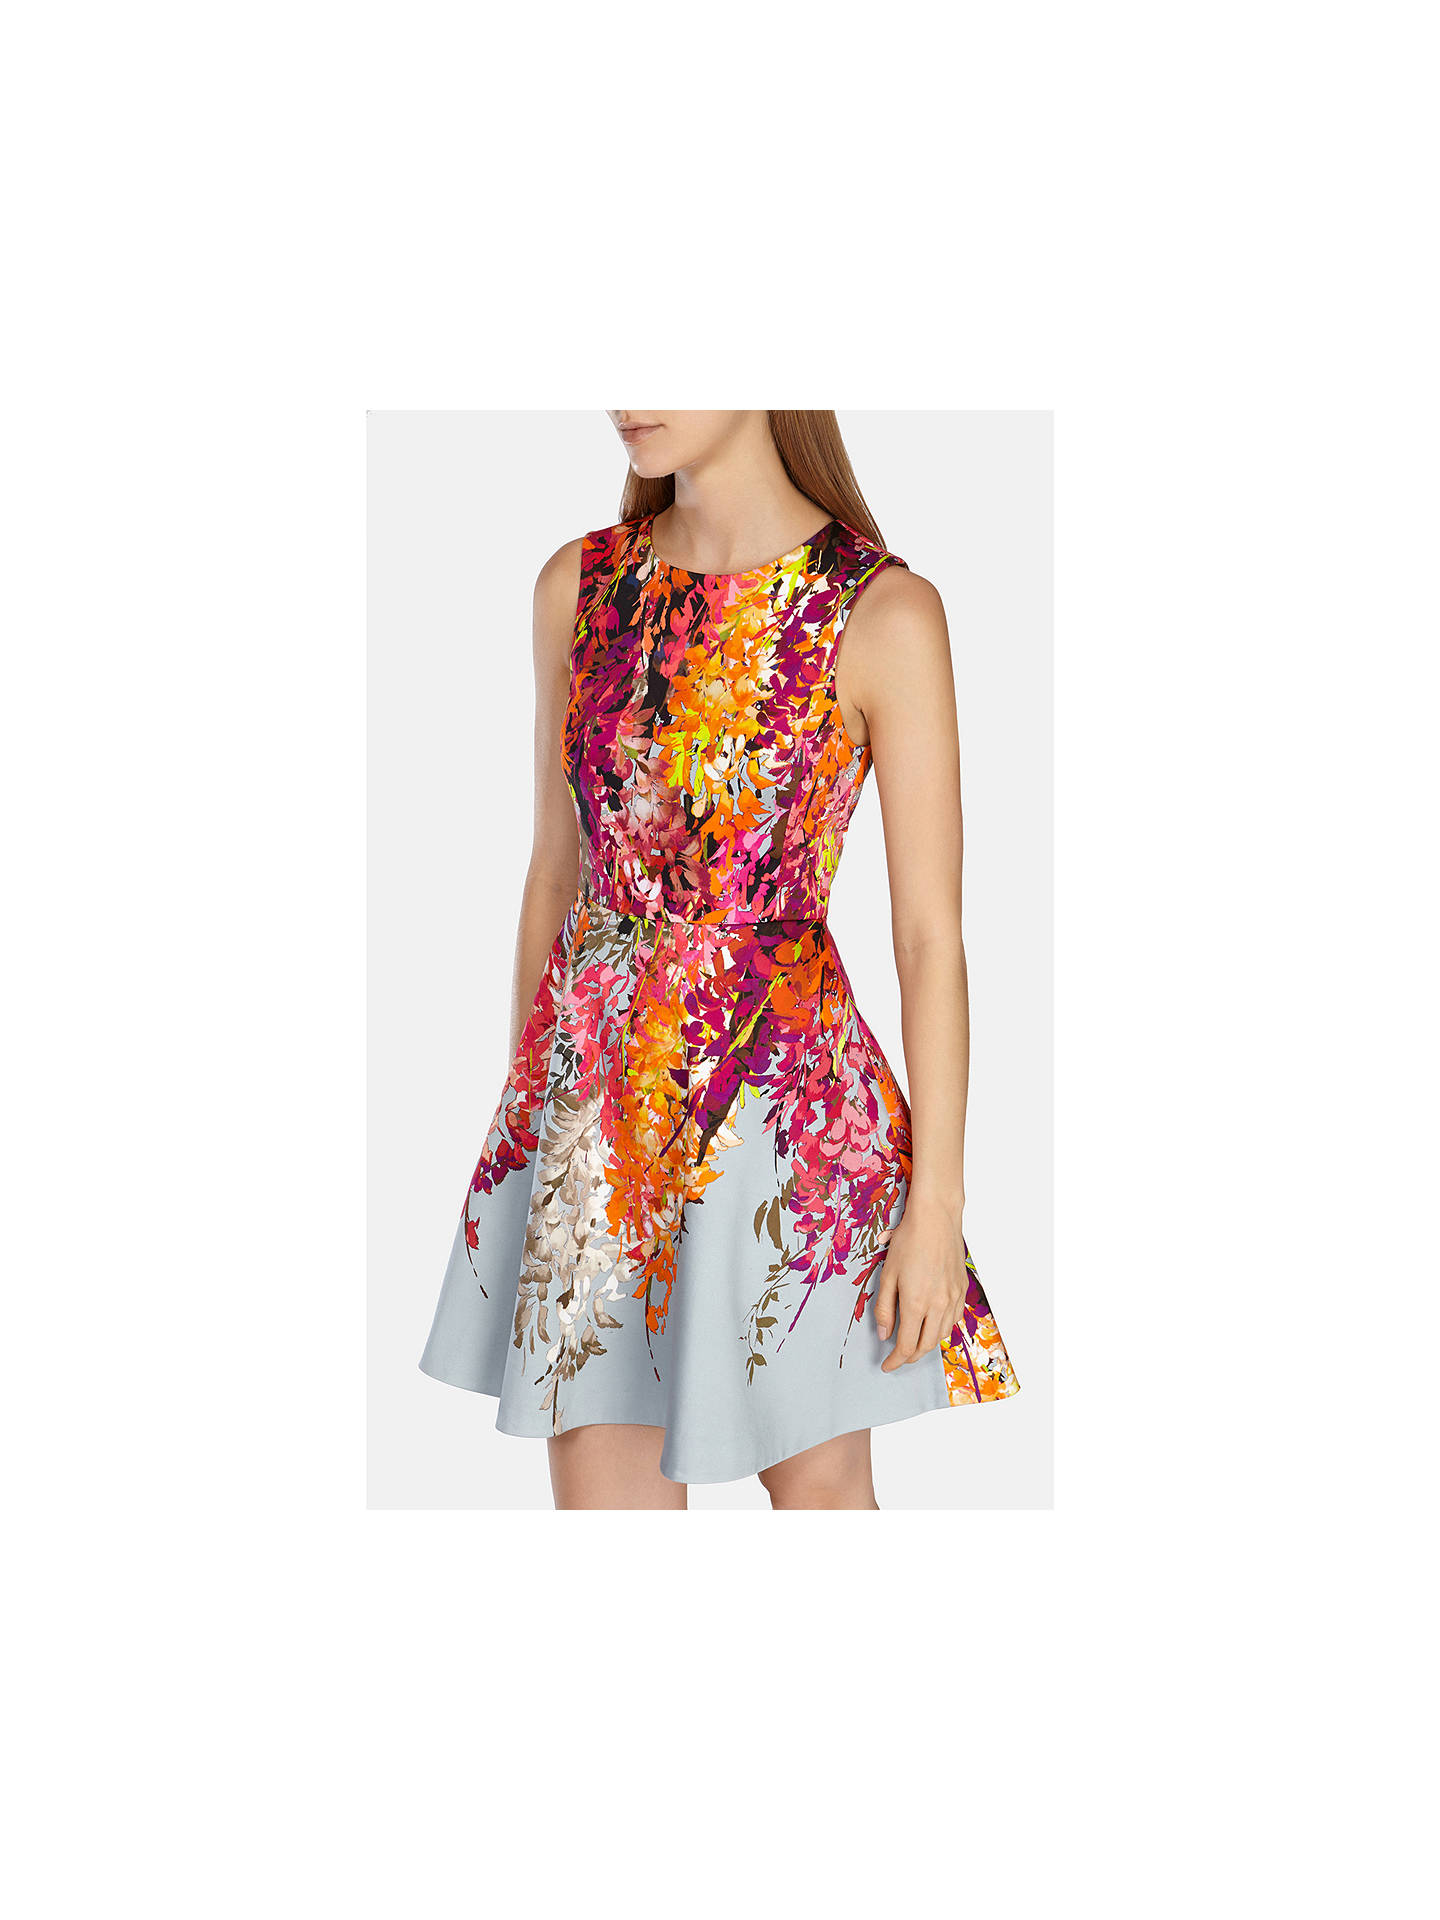 3baaedd1e28 ... Buy Karen Millen Oriental Floral Print Fit And Flare Dress, Pink / Multi,  6 ...